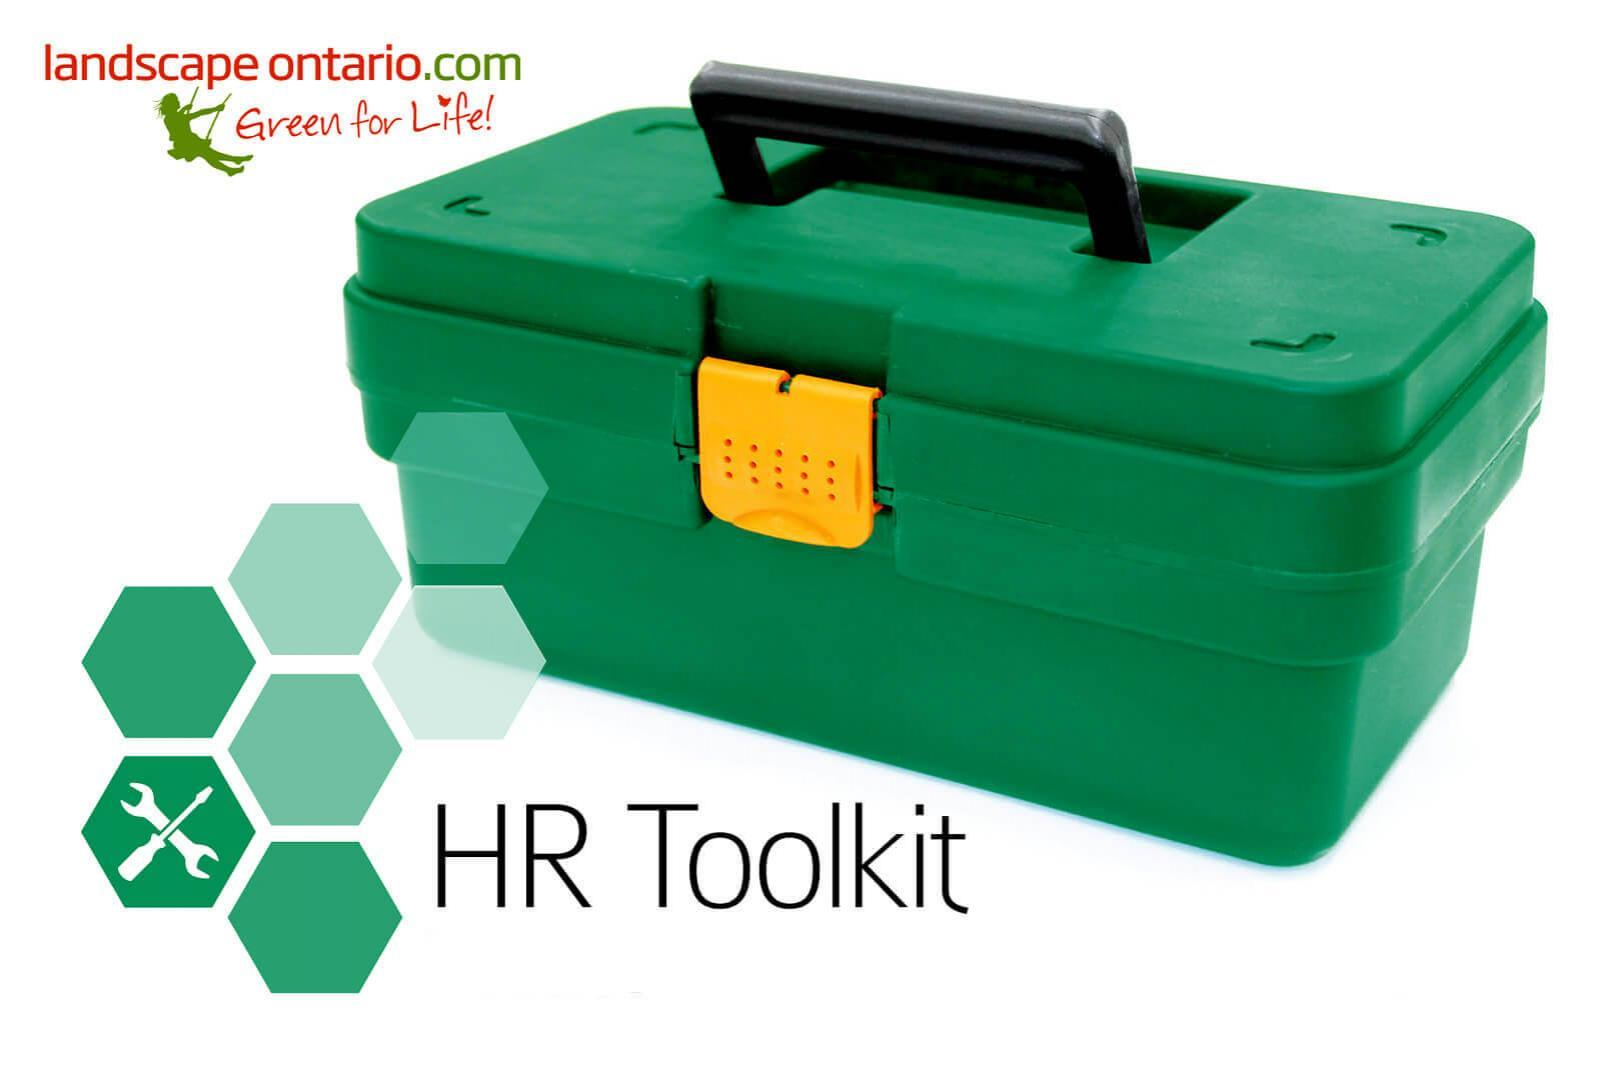 New HR Toolkit lightens employee challenges